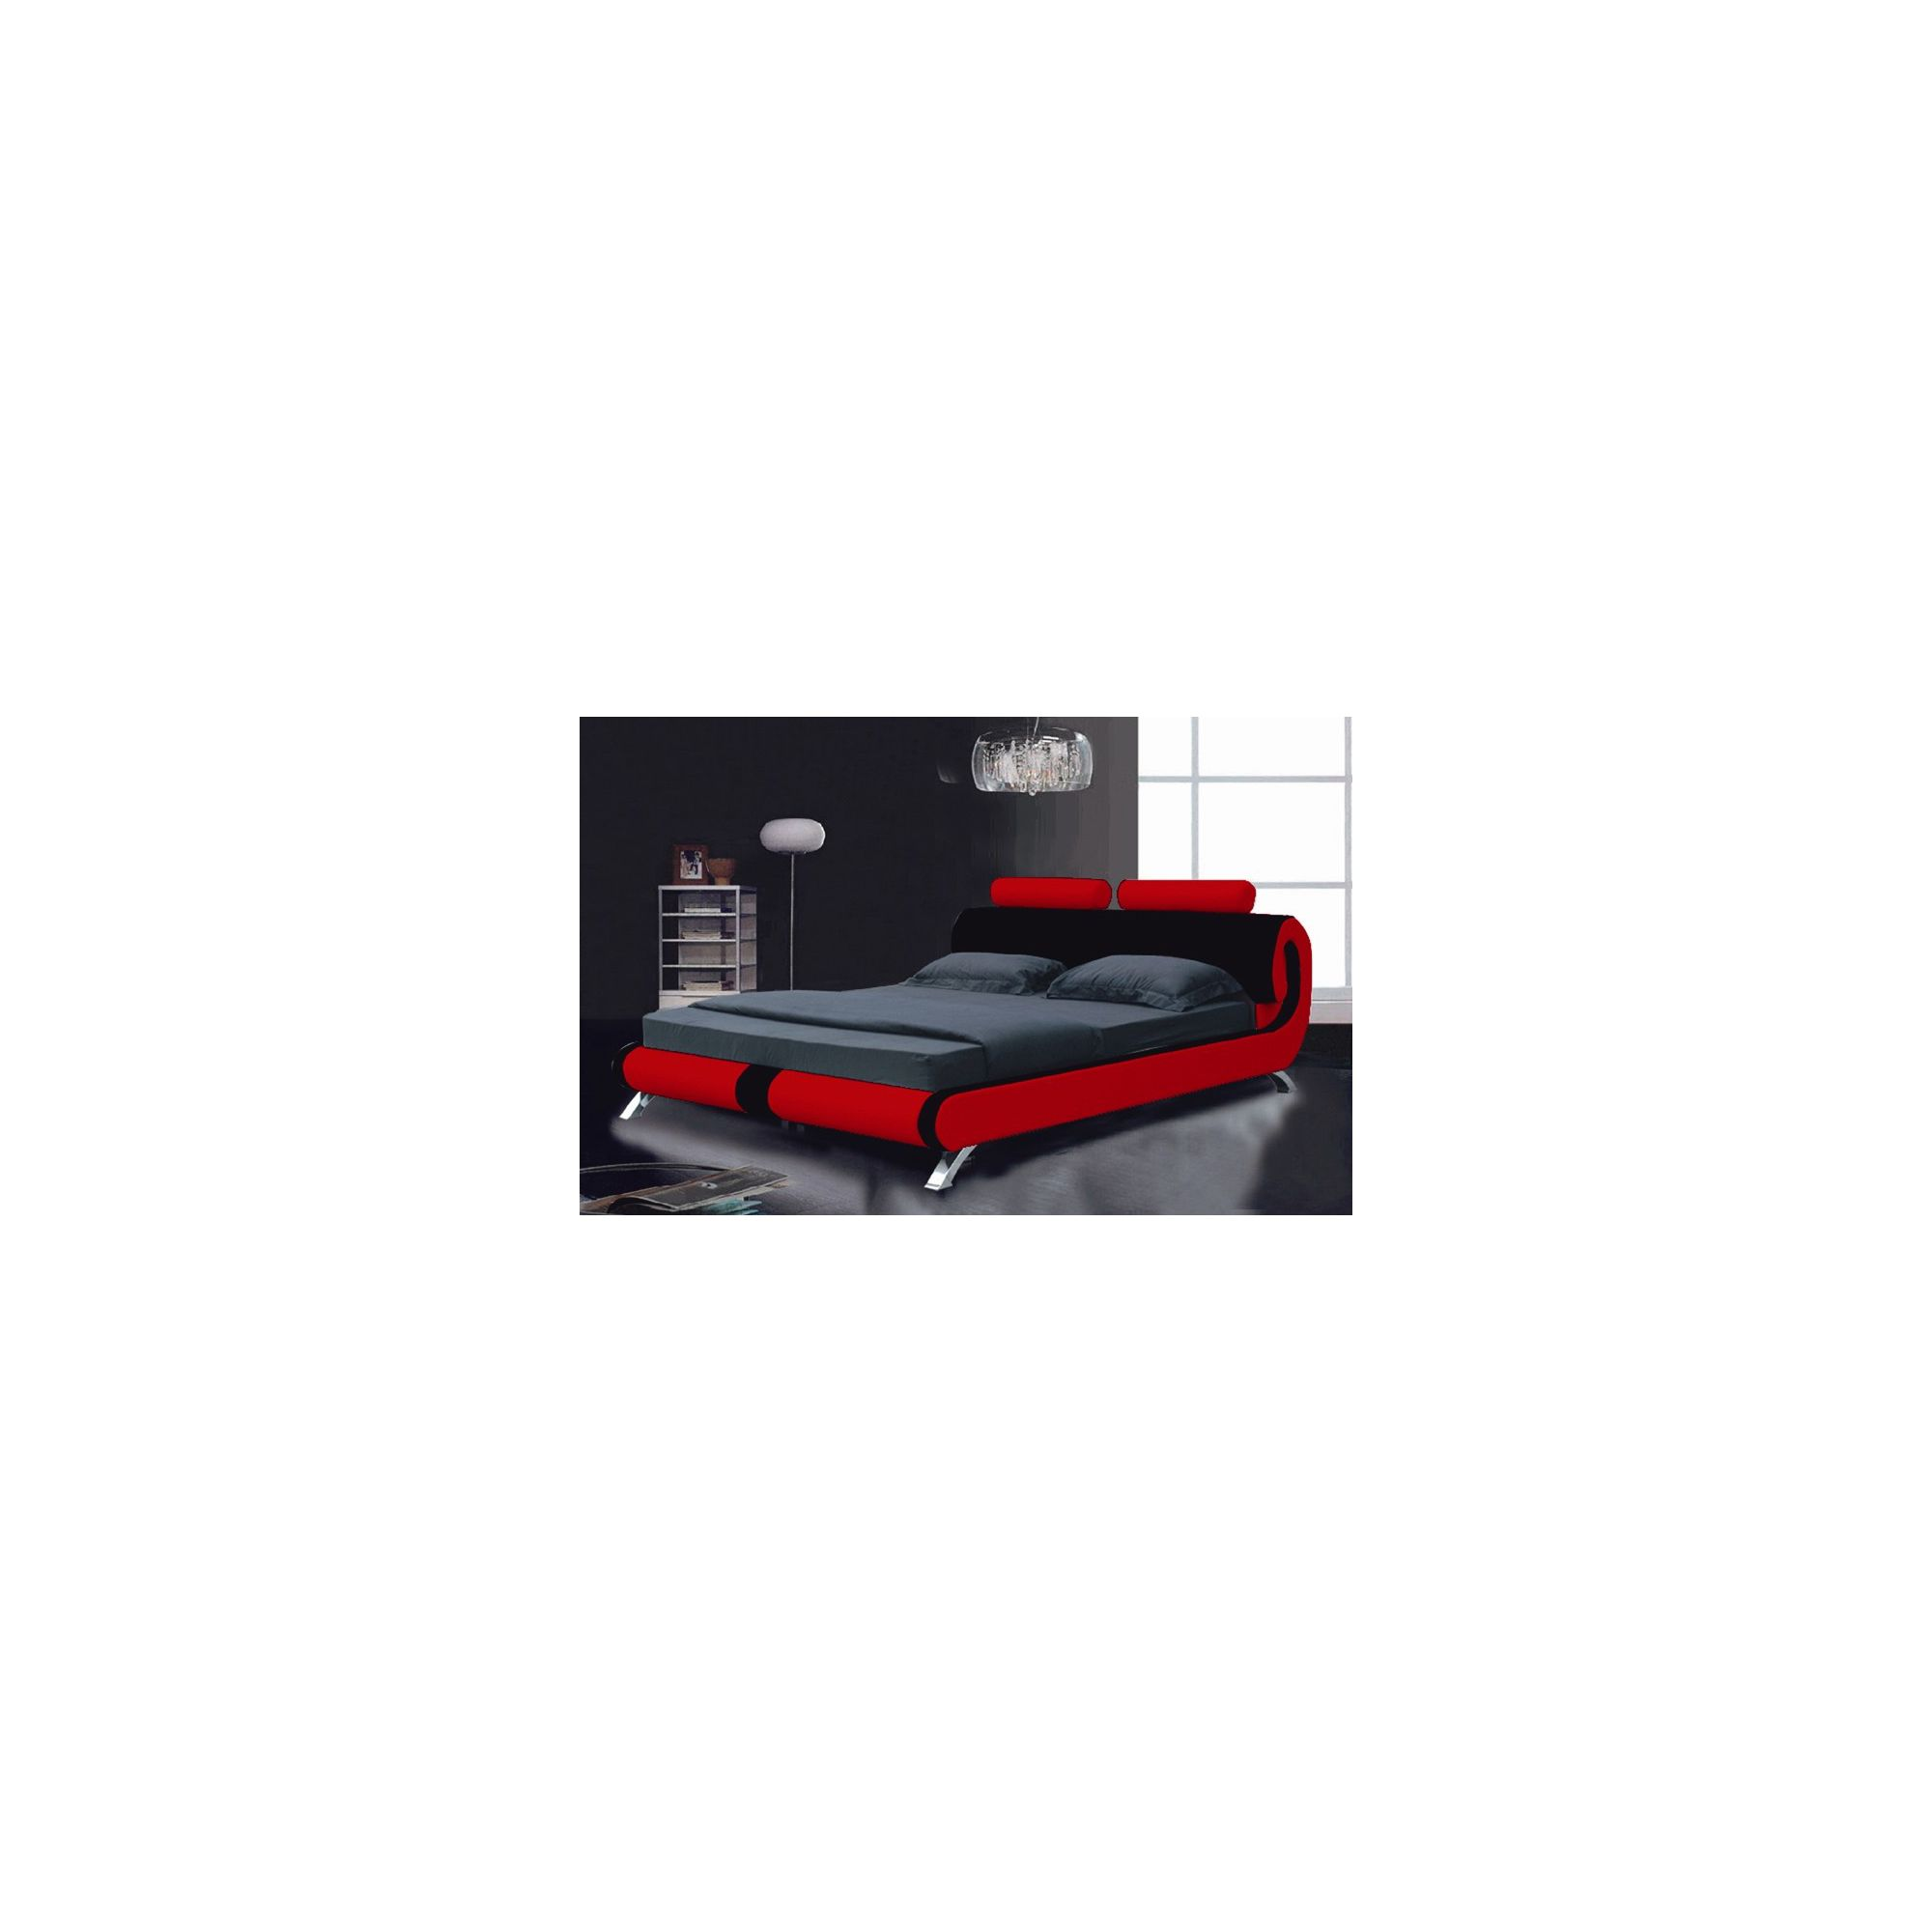 Giomani Designs Designer Curve Bed - Red / Black - Double at Tesco Direct